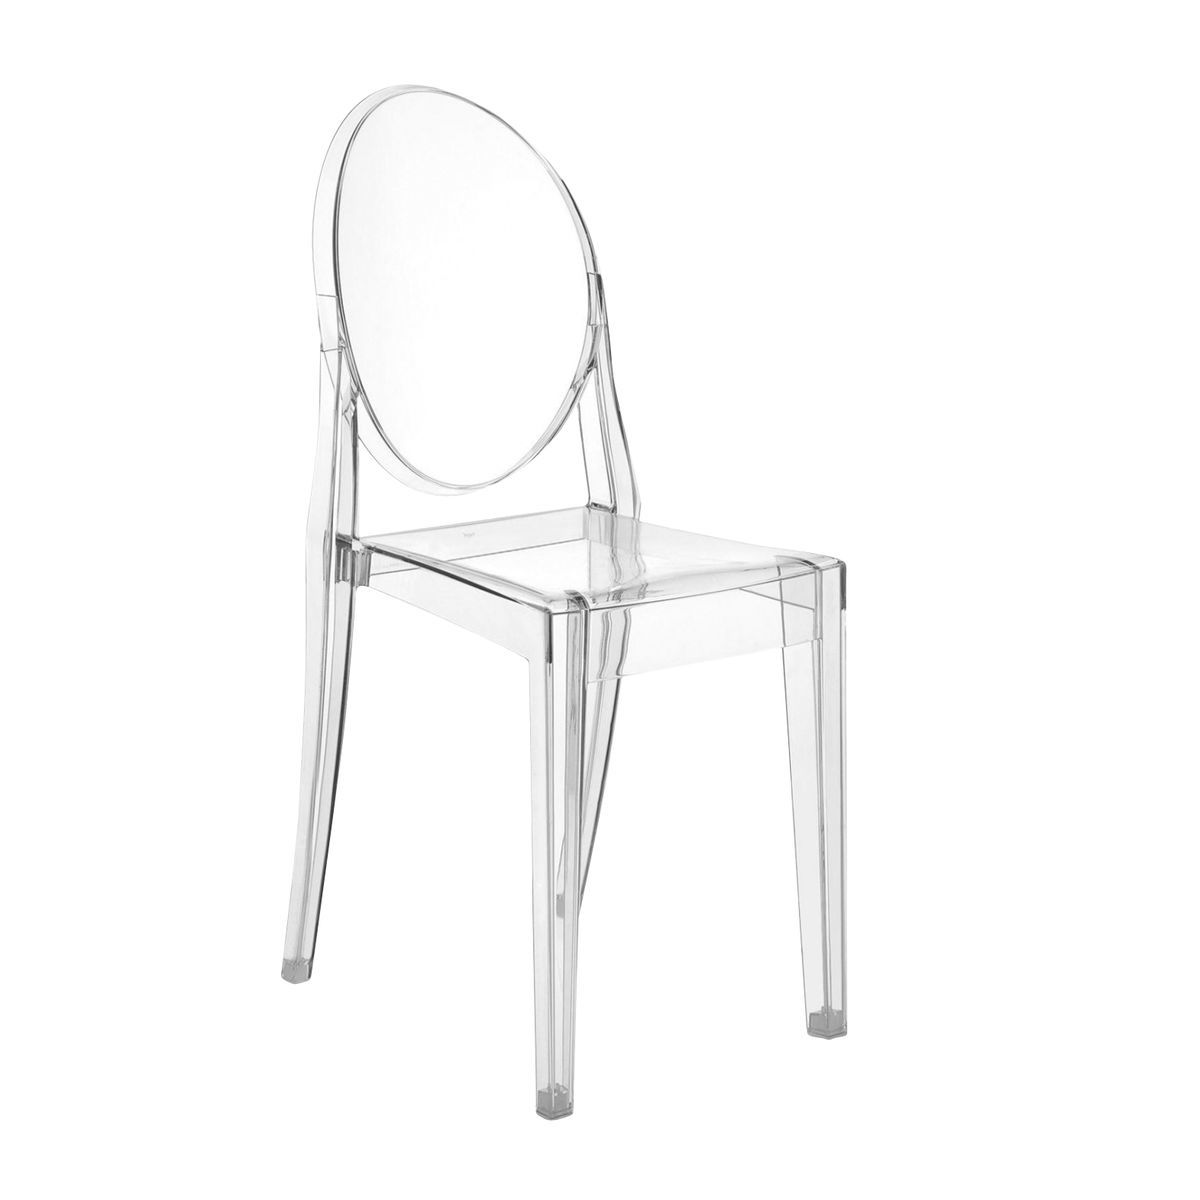 victoria ghost chair  kartell  ambientedirectcom - kartell  victoria ghost chair  transparenttransparent